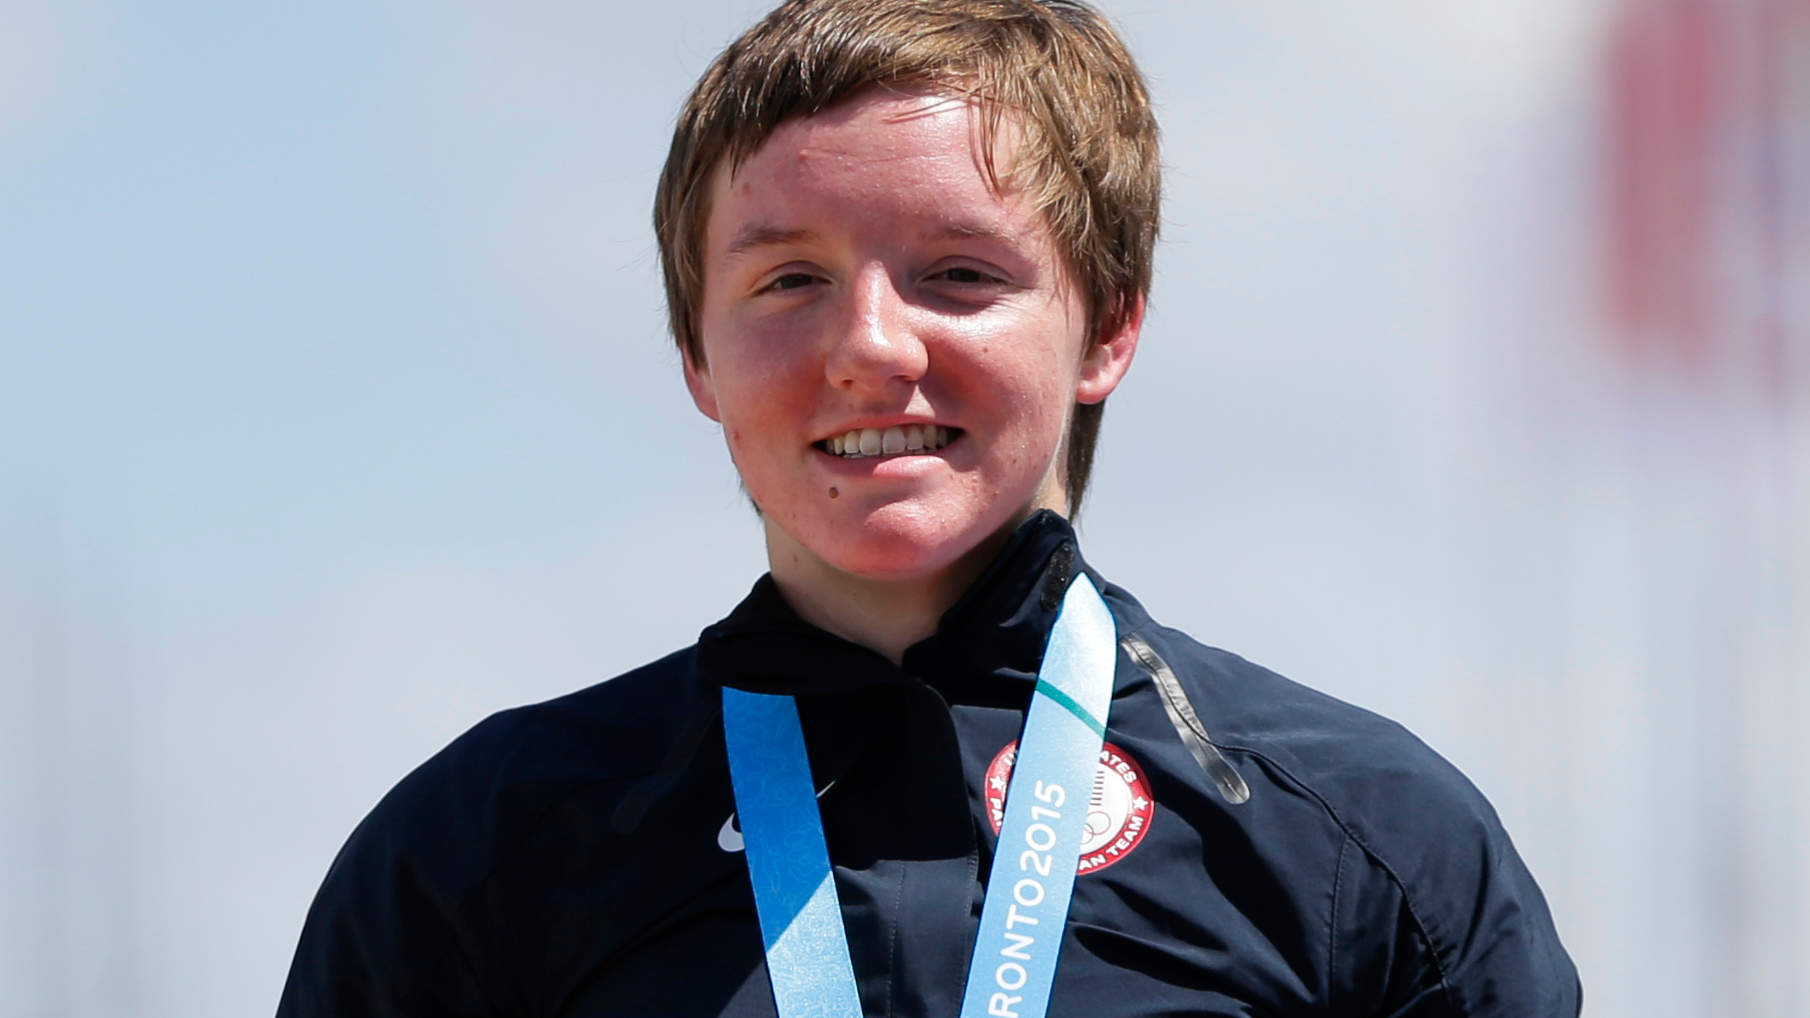 23-Year-Old Olympic Cyclist Kelly Catlin Dies in Apparent Suicide